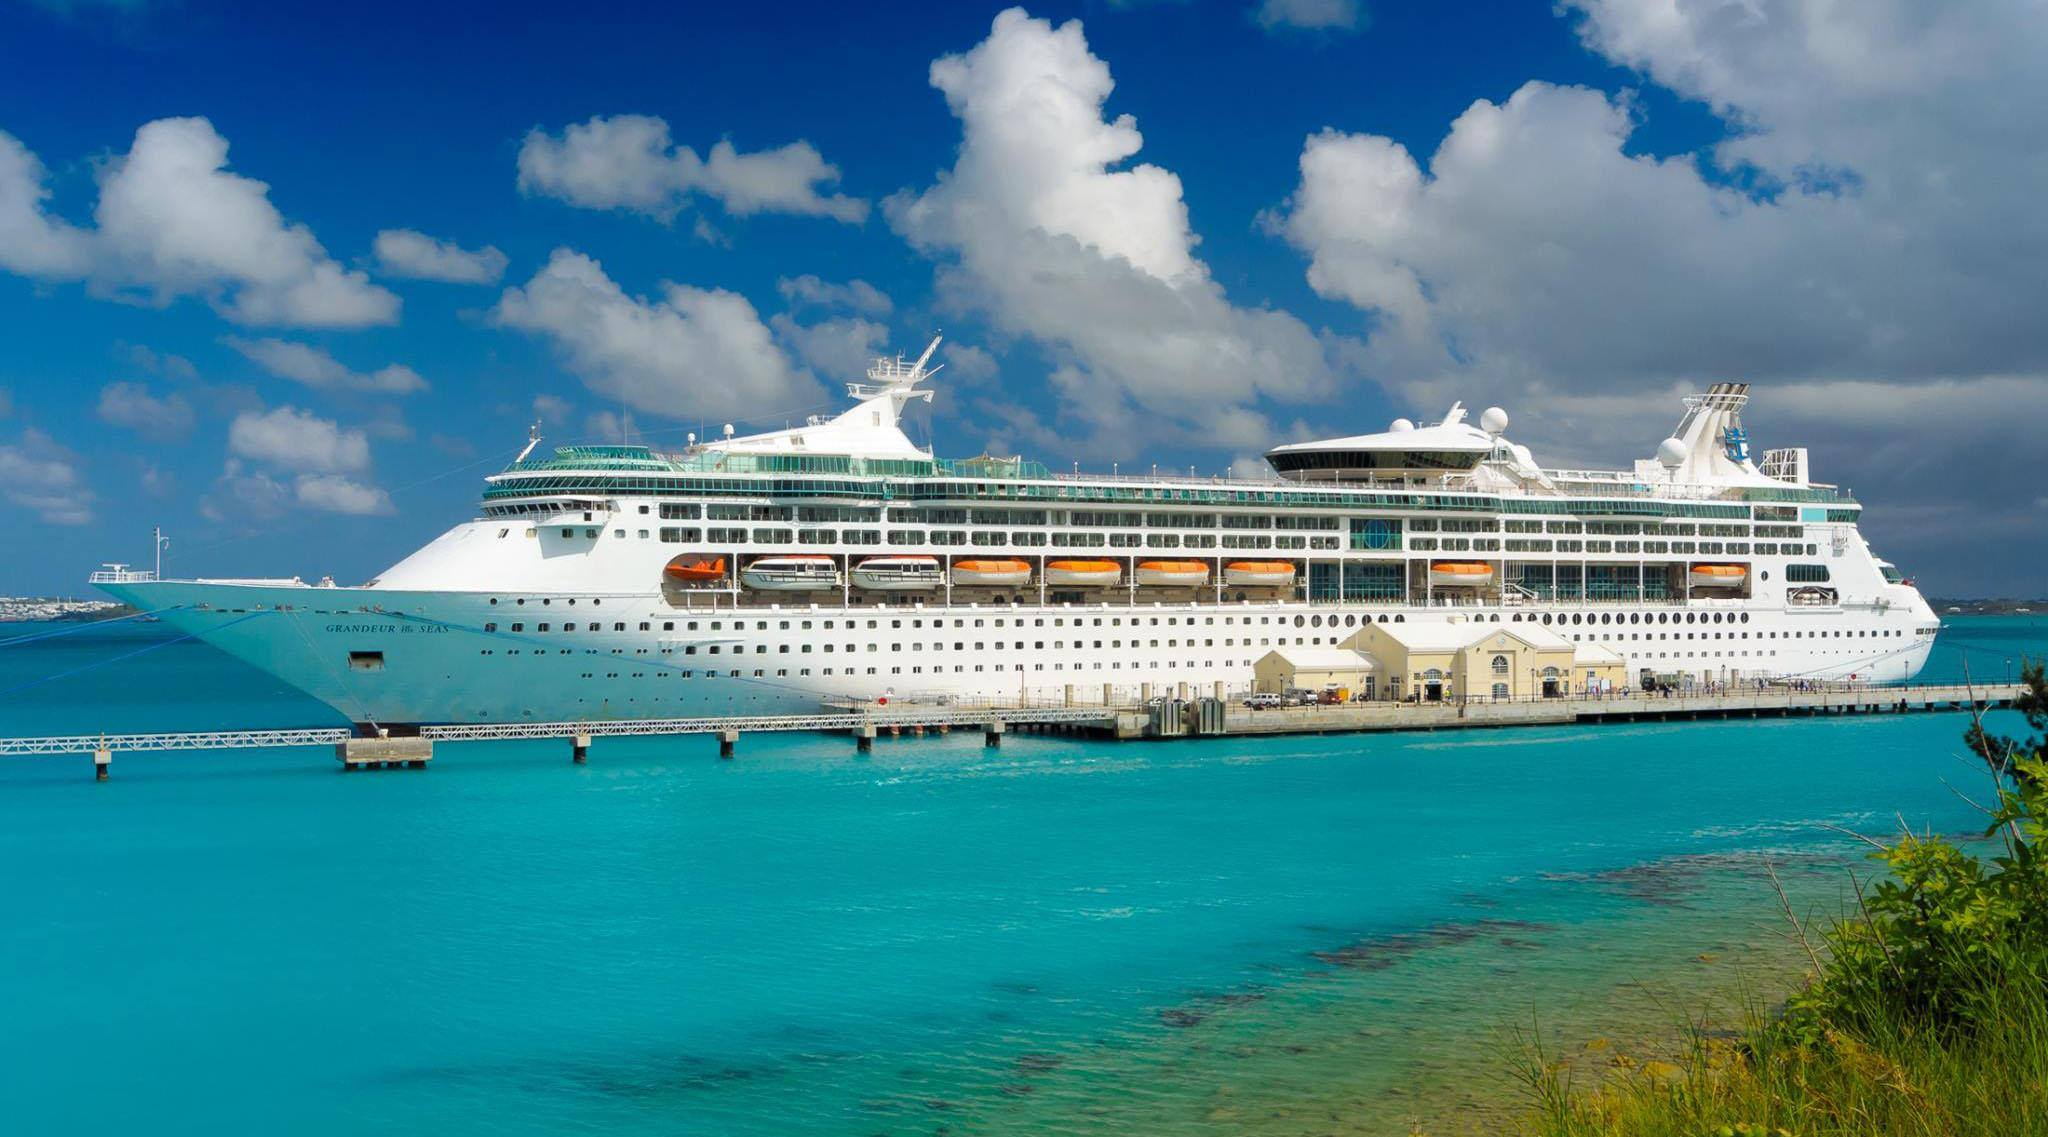 25 Tips to Save BIG on Your Next Cruise - Royal Caribbean Cruise